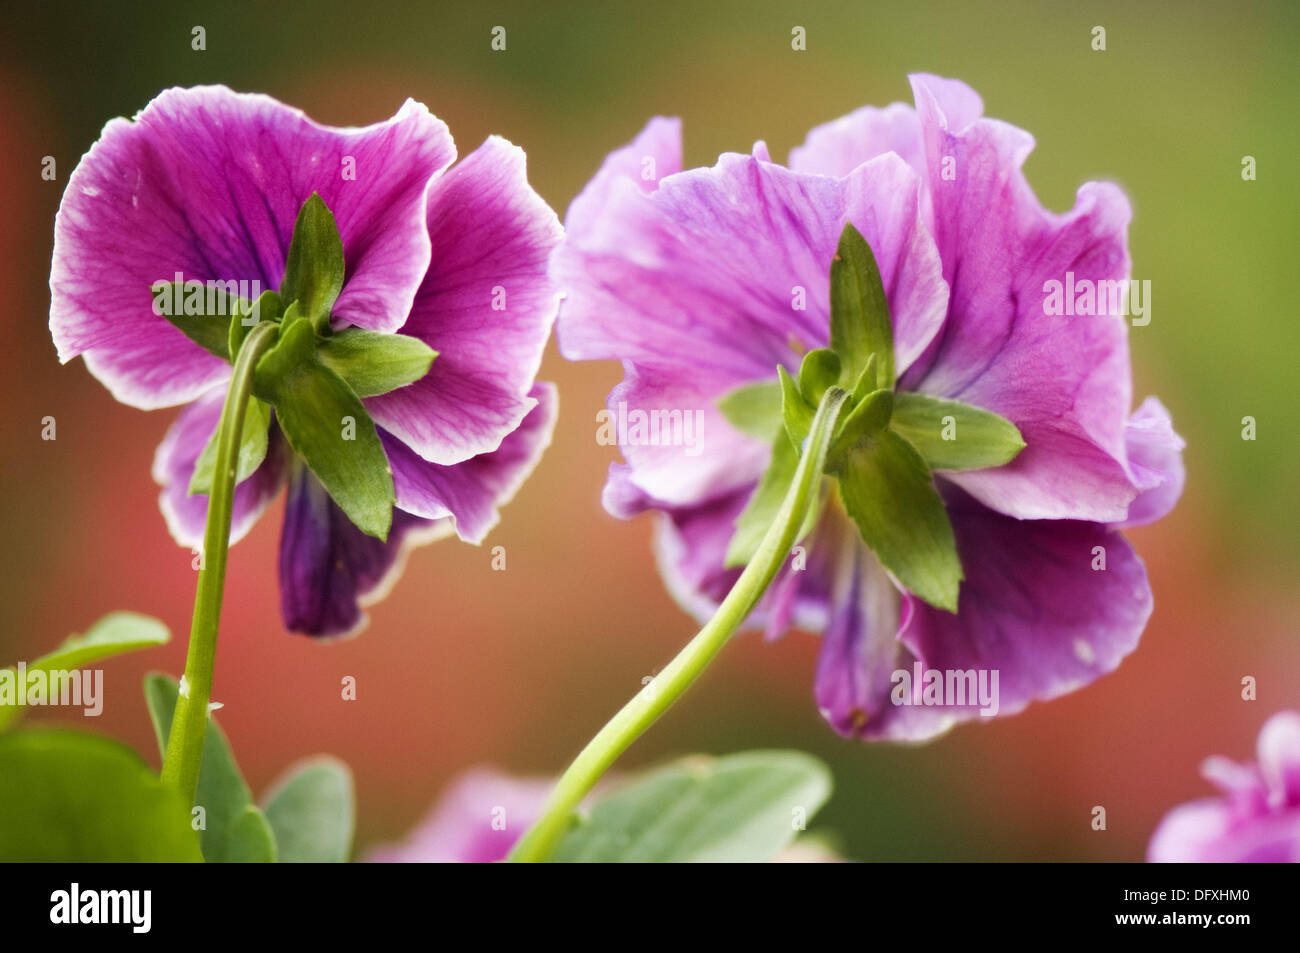 Two pink pansy flowers viola stock photos two pink pansy flowers two dark pink pansy flowers viola x wittrockiana stock image mightylinksfo